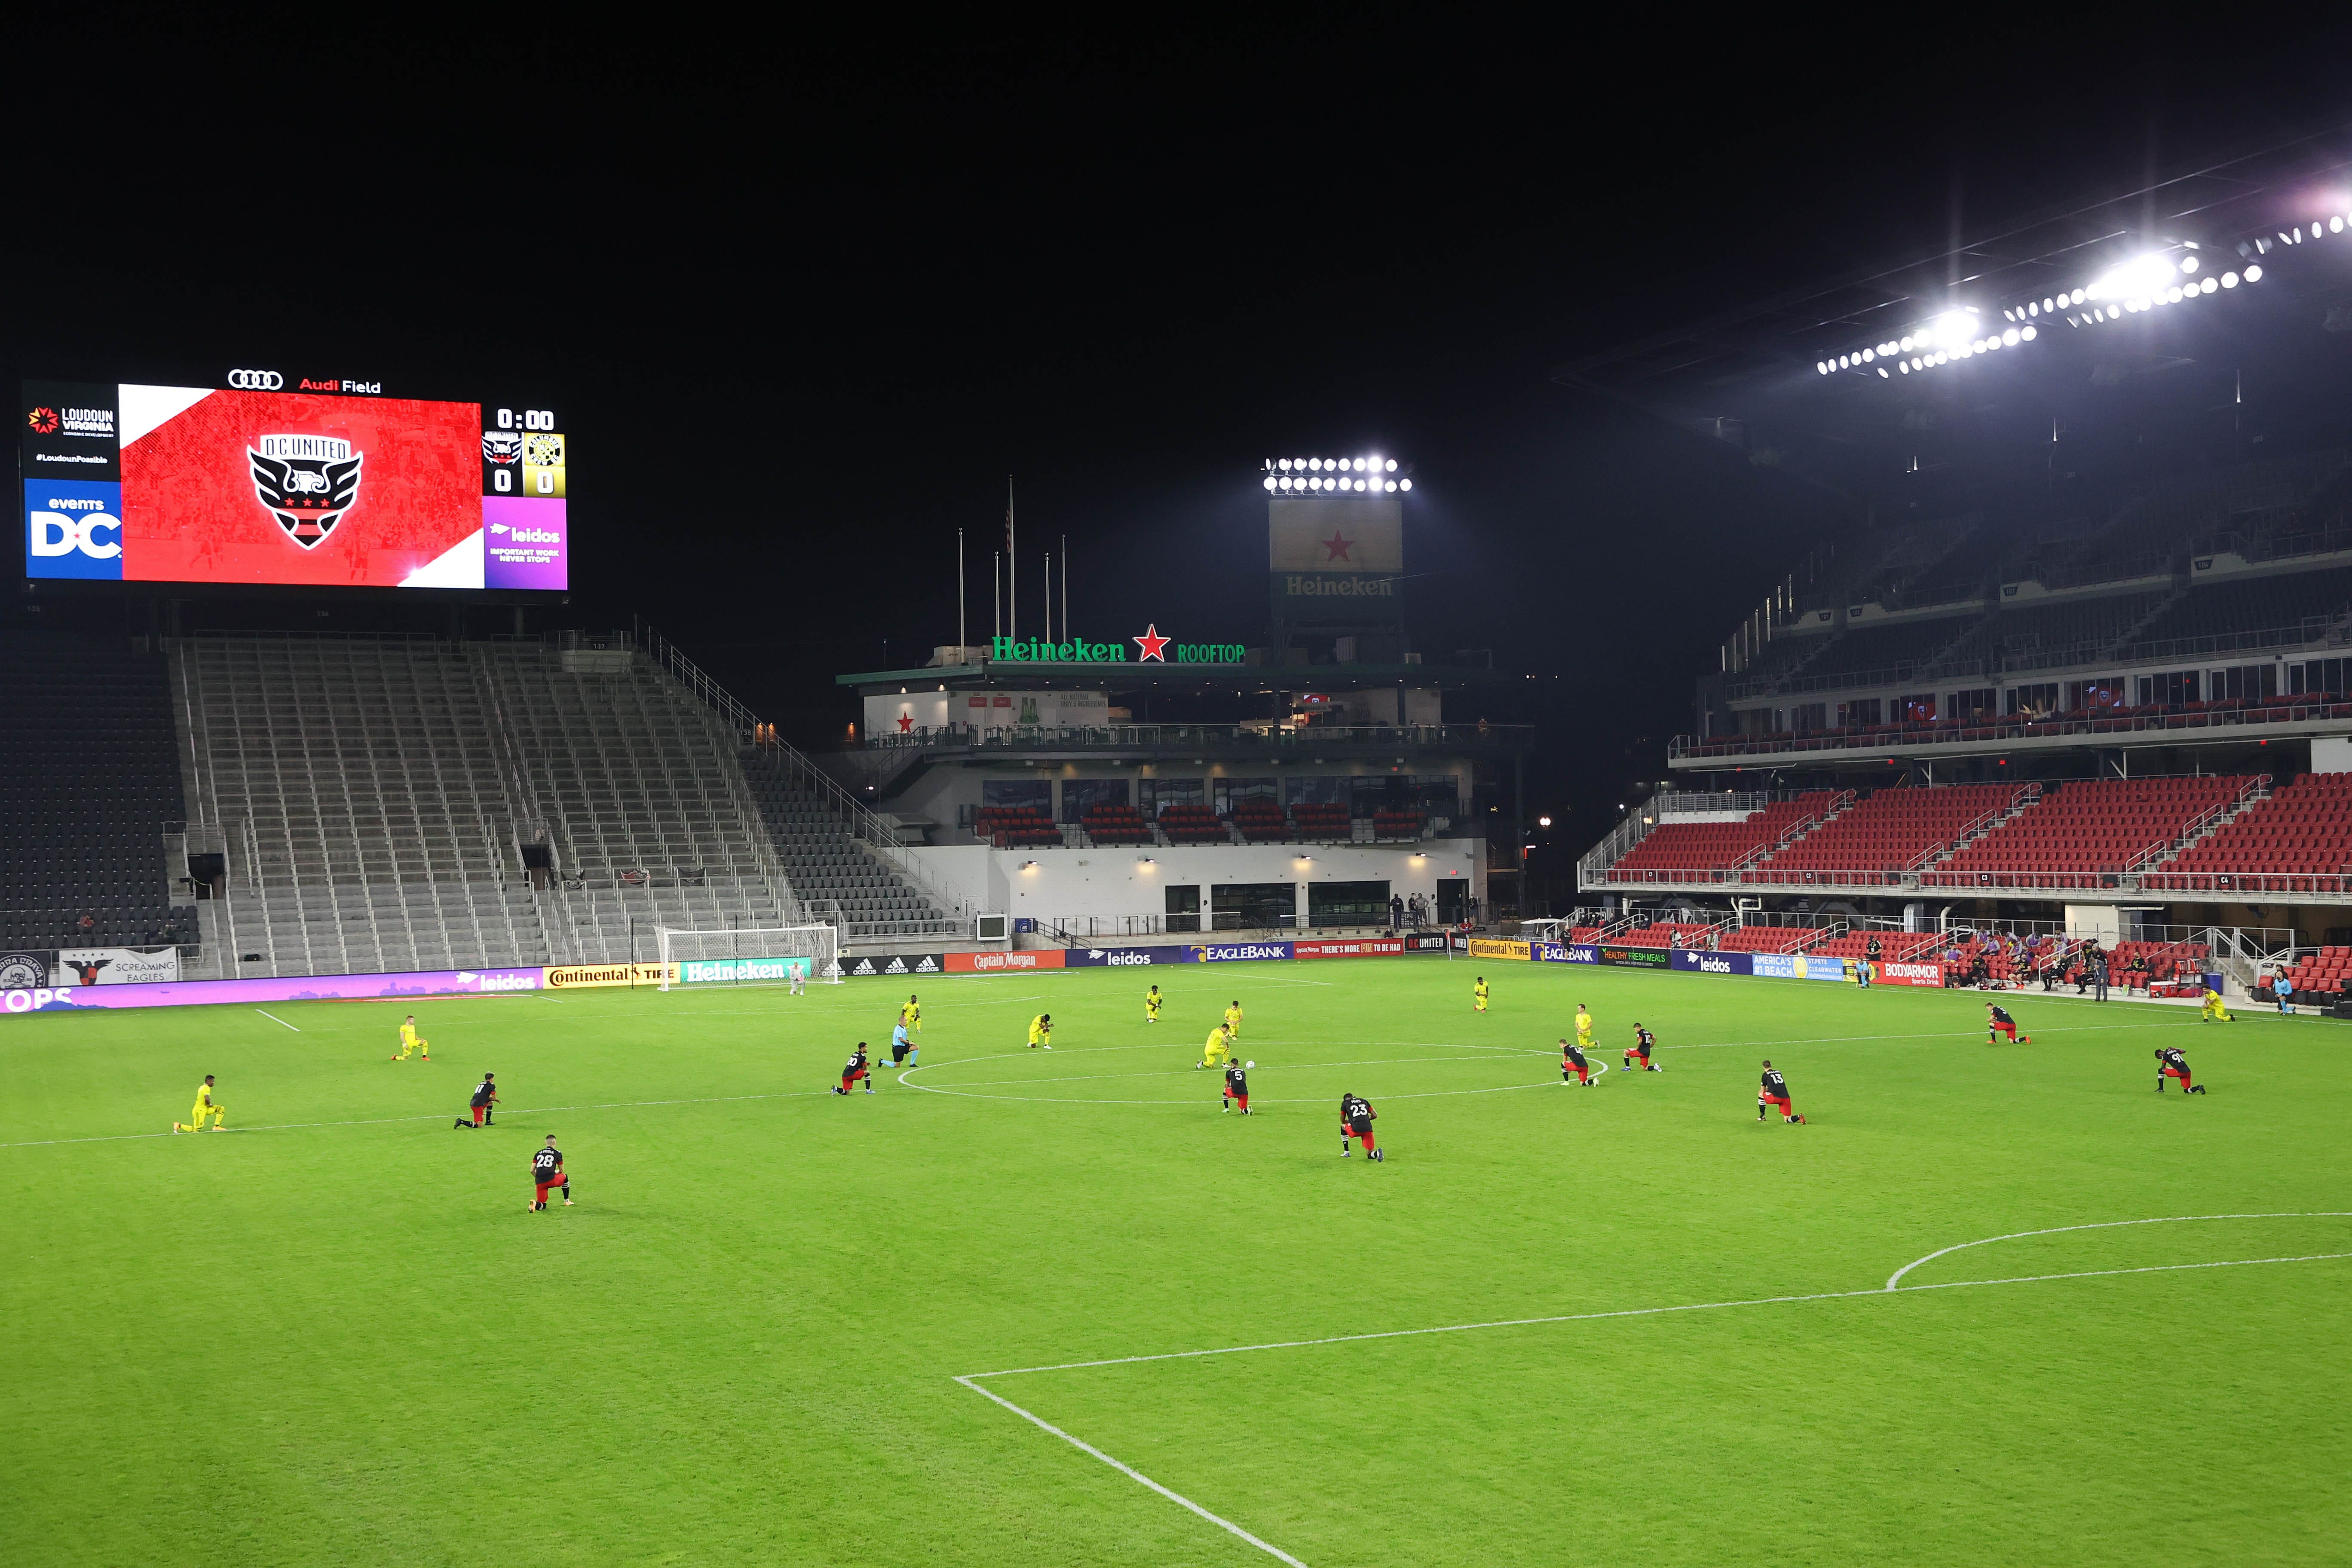 D.C. United asked employees to work overnight security at MLS stadium